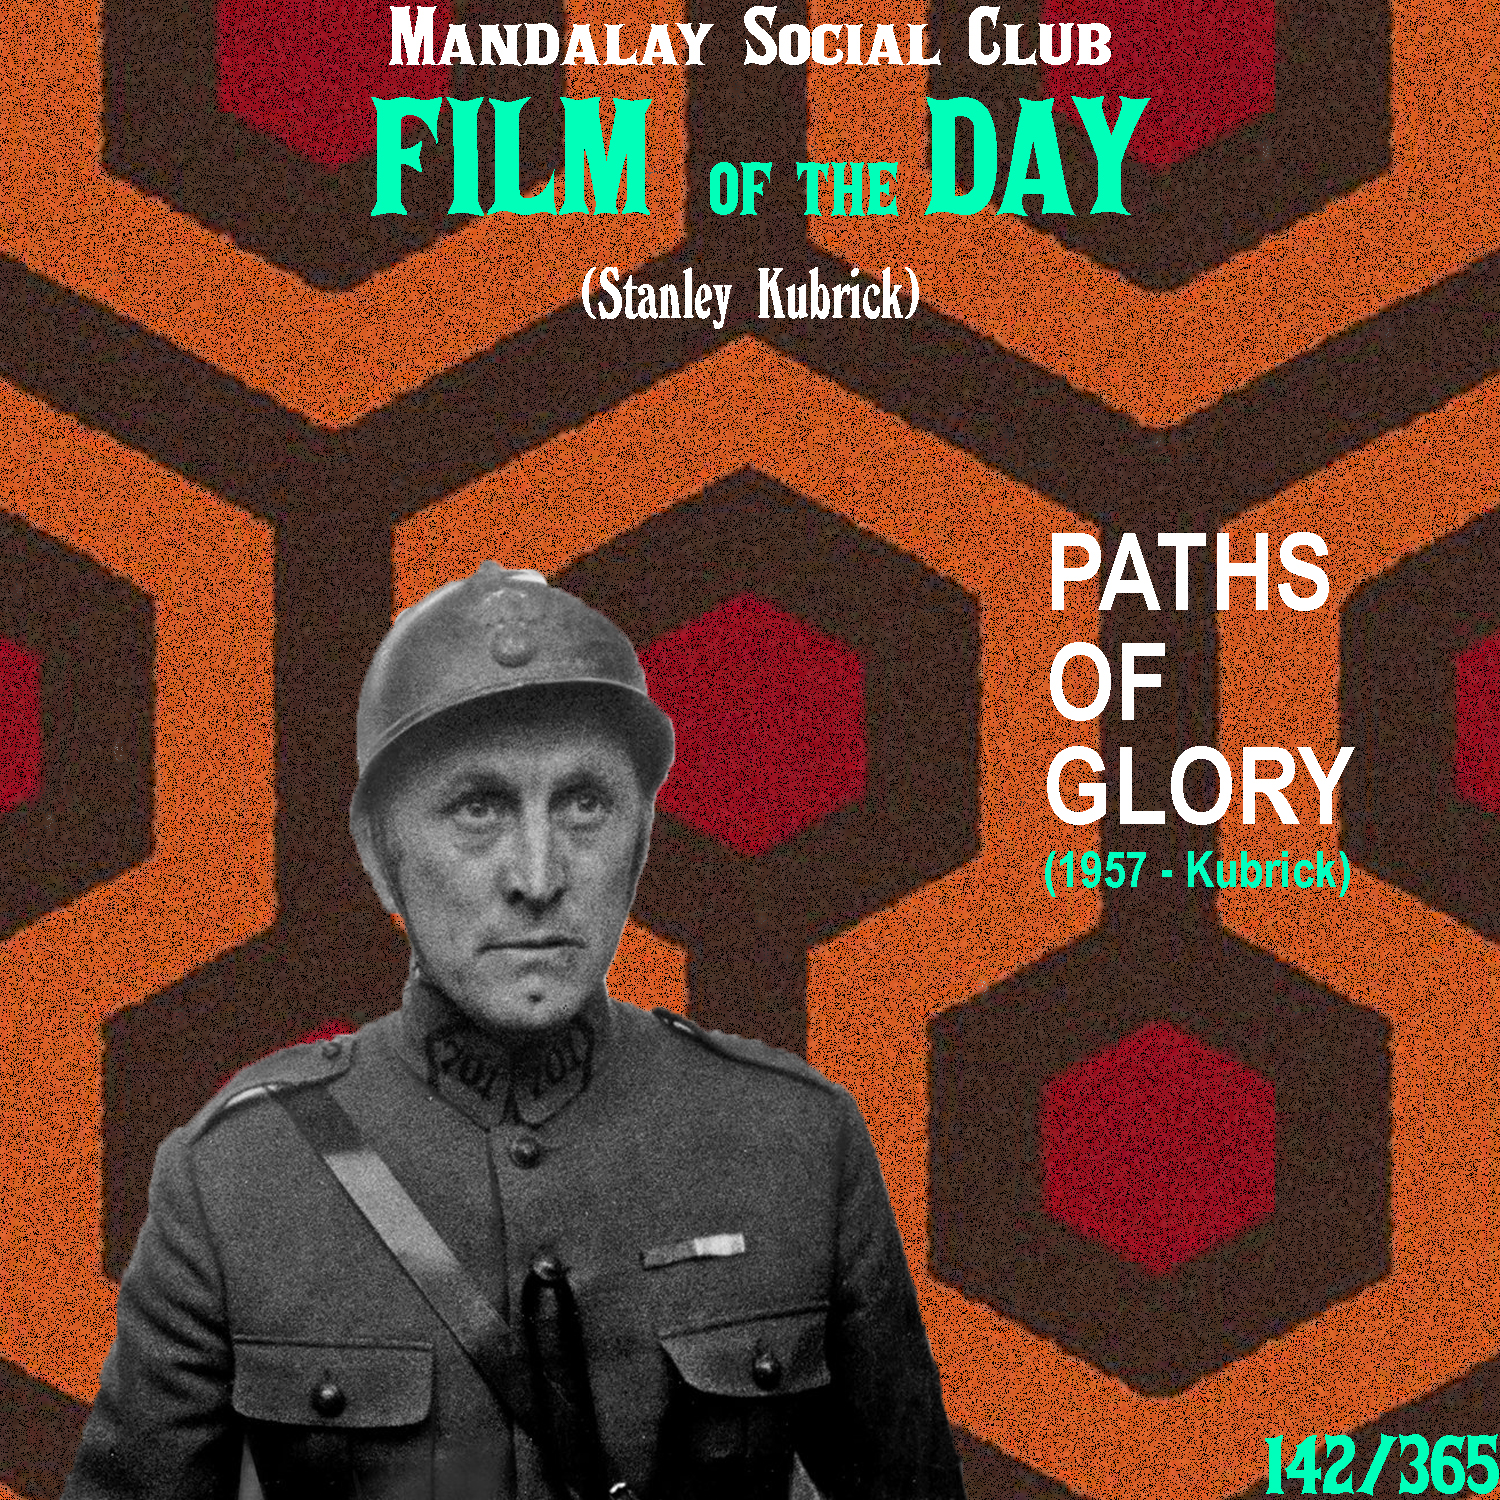 PATHS OF GLORY  (dir. Stanley Kubrick)  After The Killing, Stanley immediately followed up with his first real anti-war film, Paths of Glory, a genre Kubrick would toy with for the rest of his career.  Paths of Glory follows members of the French Army during WWI. Kirk Douglas stars as Colonel Dax, a well-respected colonel in the army. In order to gain a prominent promotion, the shady General Mireau orders an attack on a German trench that's pretty much a guaranteed death wish. When Douglas refuses and most of his men stay in the trench, the generals pick three random men for execution in order to retain and flex their power over the troops.  While The Killing and even Killer's Kiss were great films, Paths of Glory is the first one that really starts showcasing some of the auteurist qualities that would define Kubrick's work. For instance, the tracking shots of Kirk Douglas in the trenches paved the way for all the many orderly tracking shots Kubrick would go on to use over the next 40 years.  Paths of Glory also has great support with roles from Ralph Meeker (Kiss Me Deadly) and Timothy Carey (The Killing) as two of the innocent men who were picked at 'random' for execution. Each of them give career defining performances, regardless of how small the roles may have been.  5/5  WATCH: Criterion Channel, Putlocker (FREE)